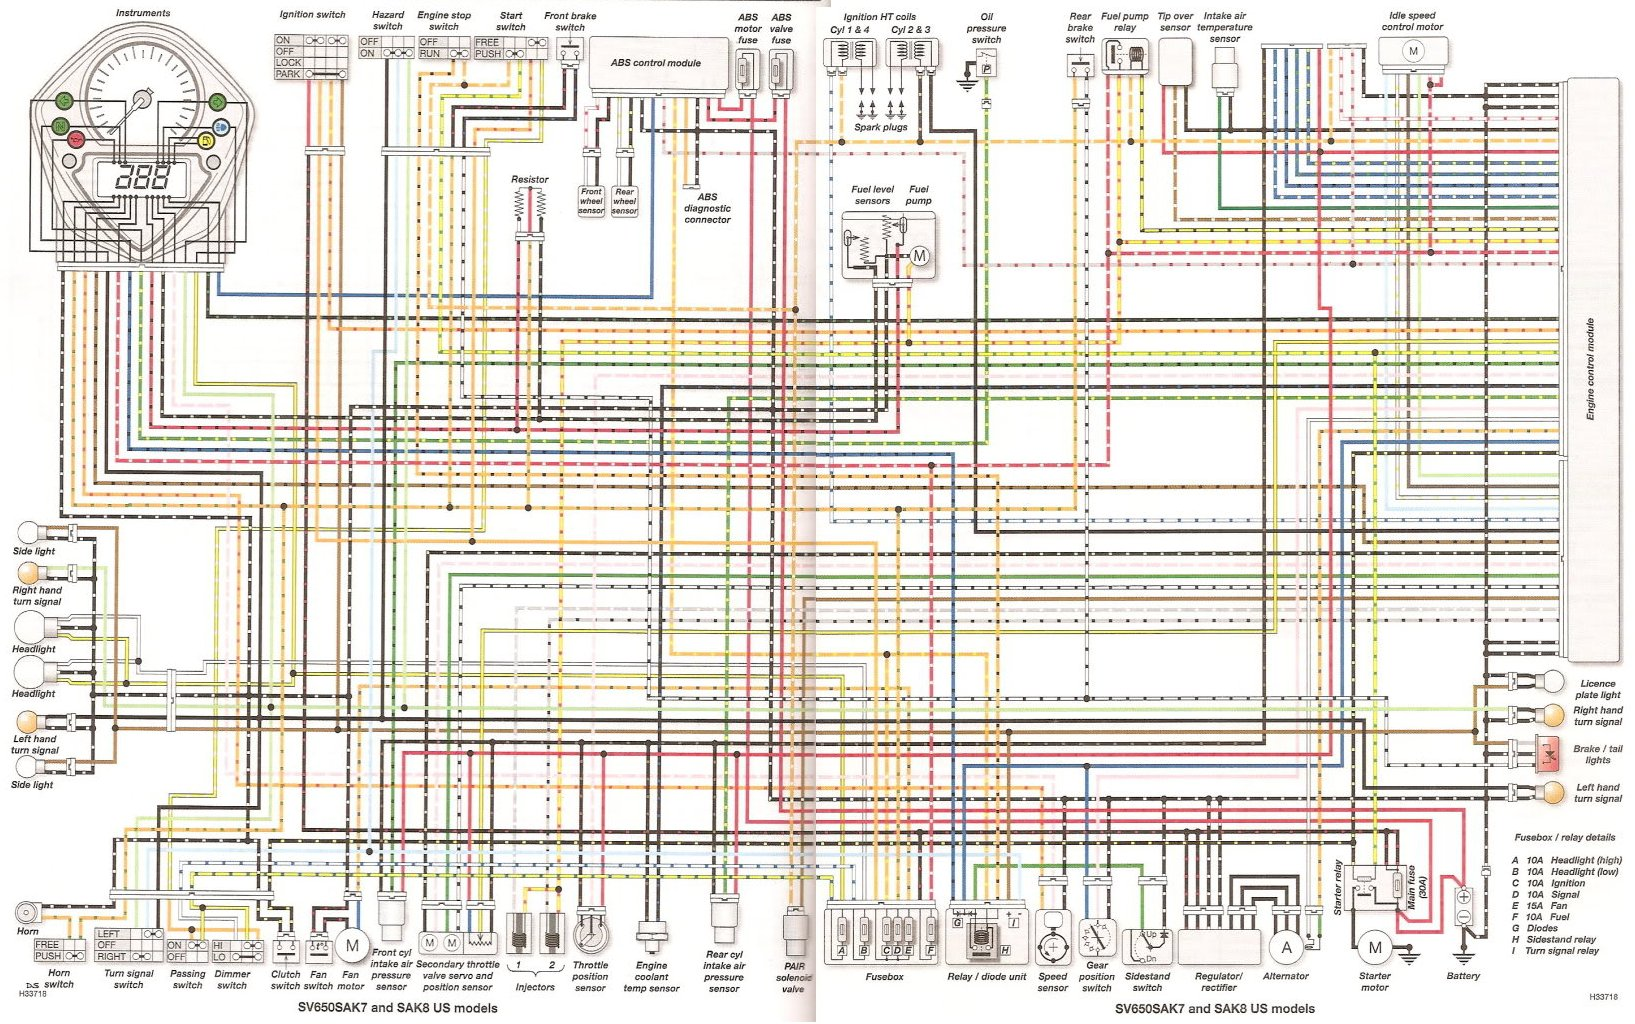 Sv650 K7 Wiring Diagram The Portal And Forum Of 07 R1 Todays Rh 15 5 8 1813weddingbarn Com Kawasaki Diagrams 2007 Gsxr 1000